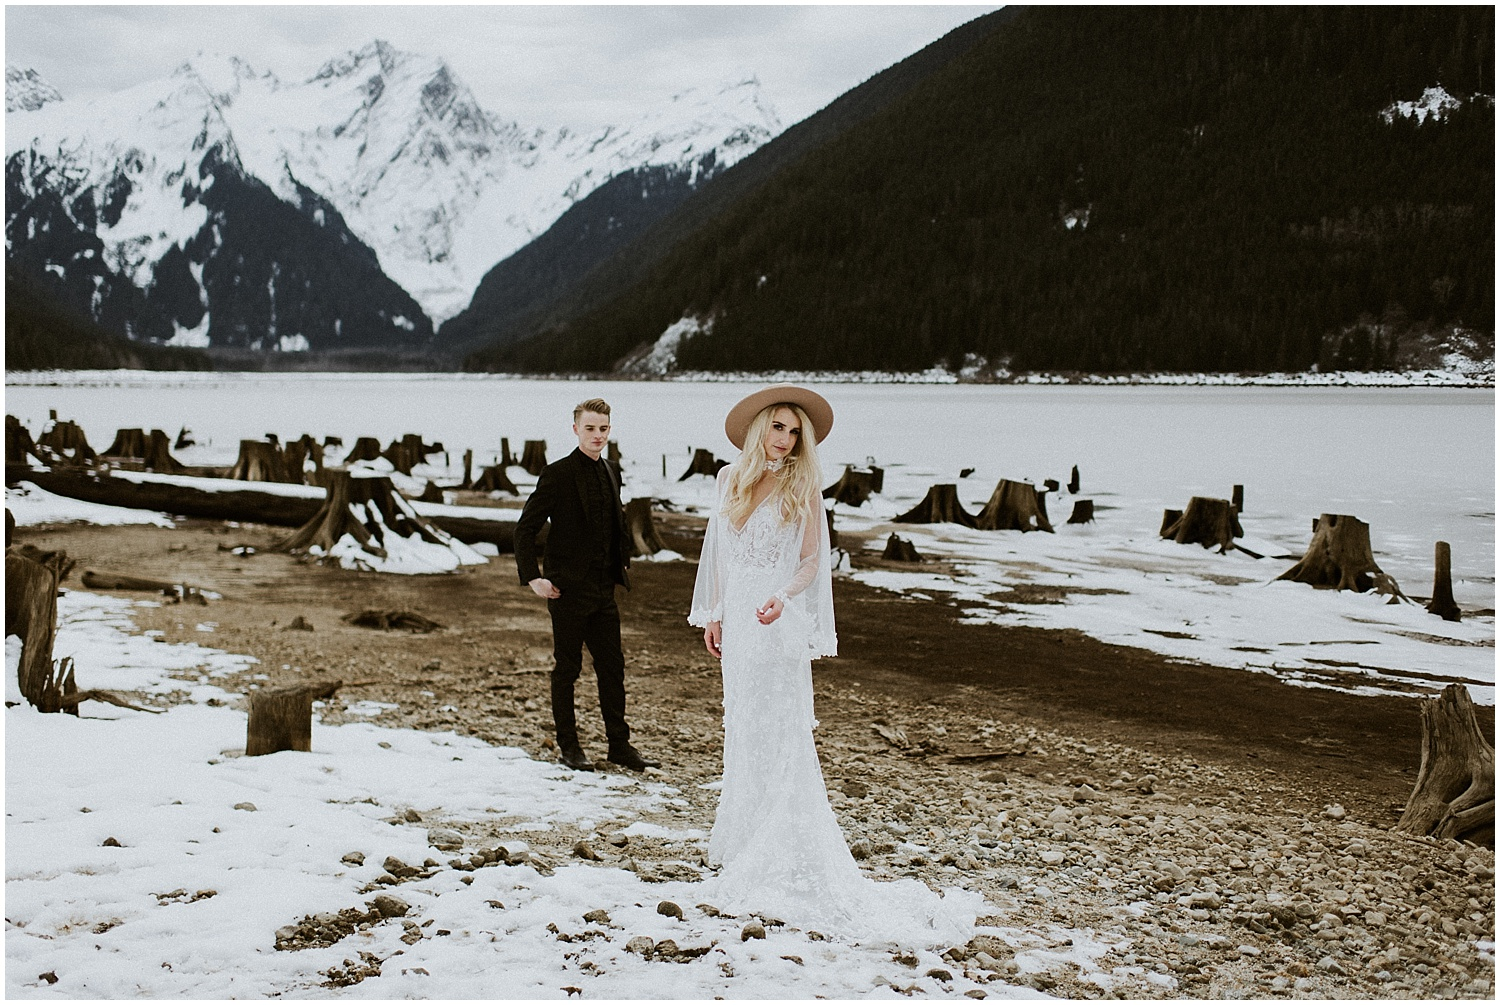 Jones_Lake_wedding_winter_elopement_vancouver_photographer_0267.jpg